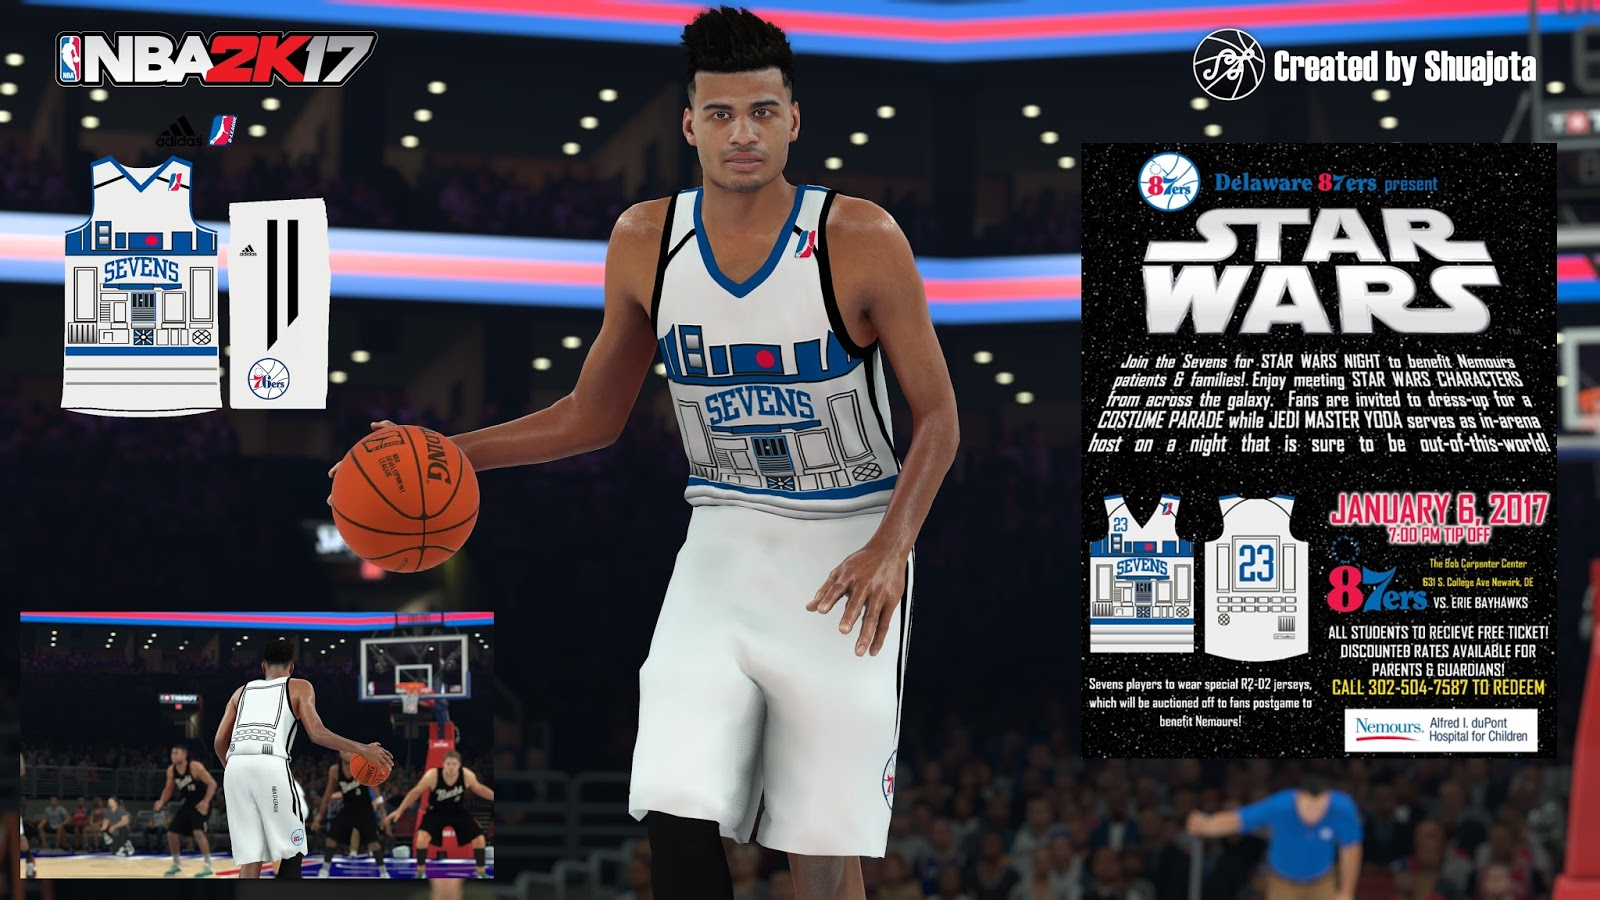 DNA Of Basketball | DNAOBB: NBA 2K17 Delaware 87ers (Star Wars Night) Jersey by Shuajota